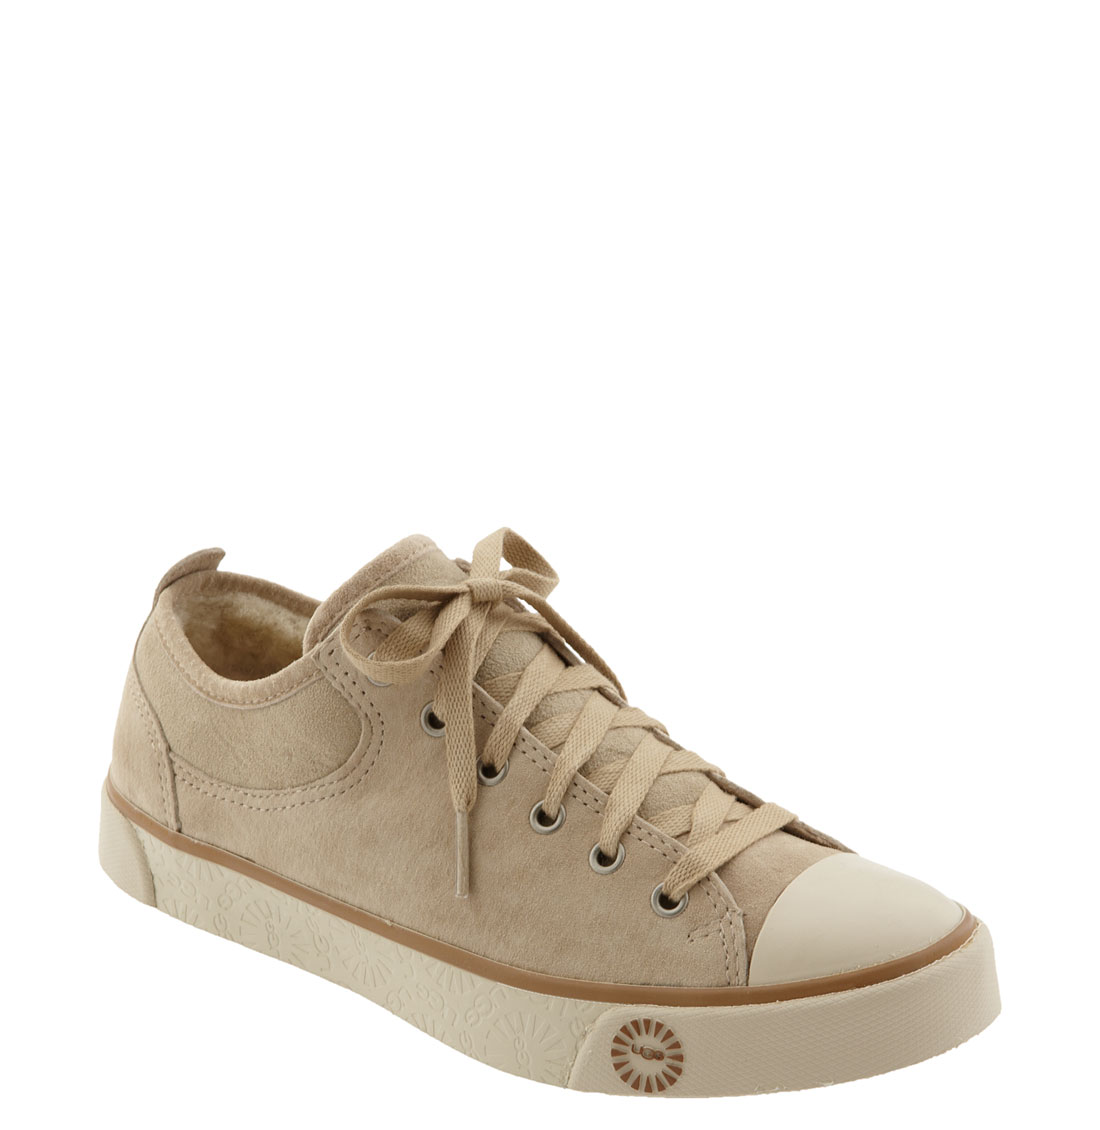 ugg evera canvas sneaker